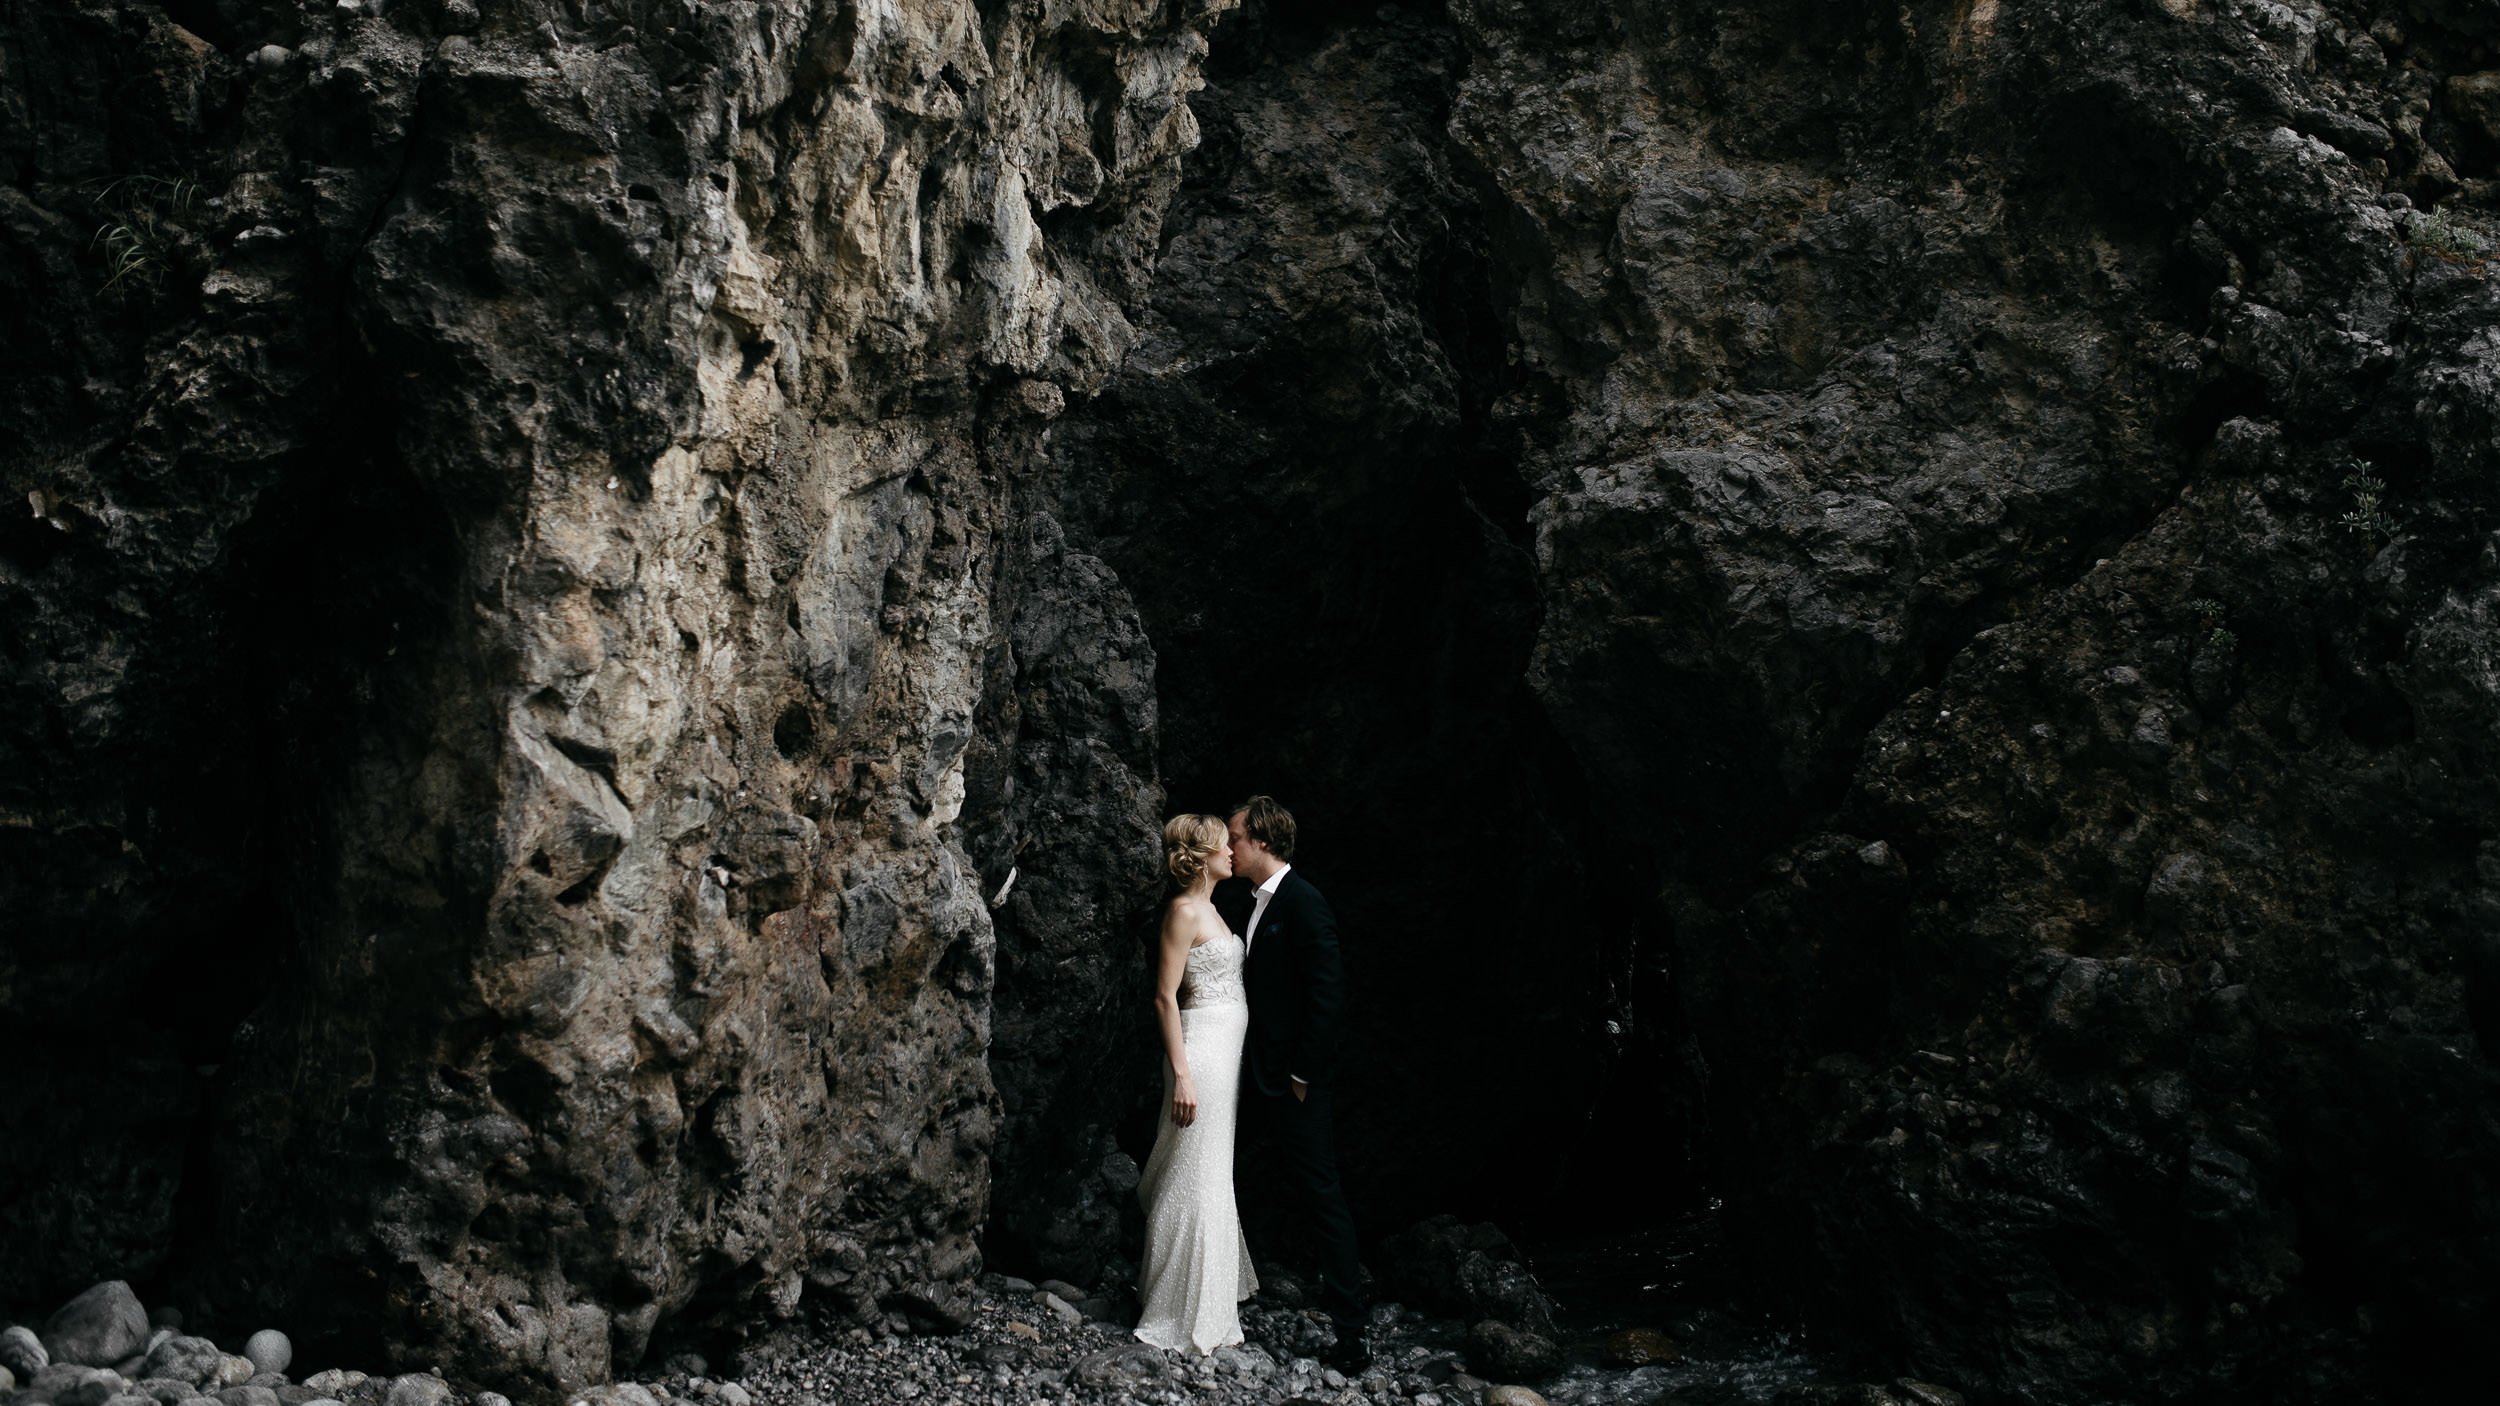 Jean-Laurent Gaudy, Budir Destination Wedding Elopement Photographer.